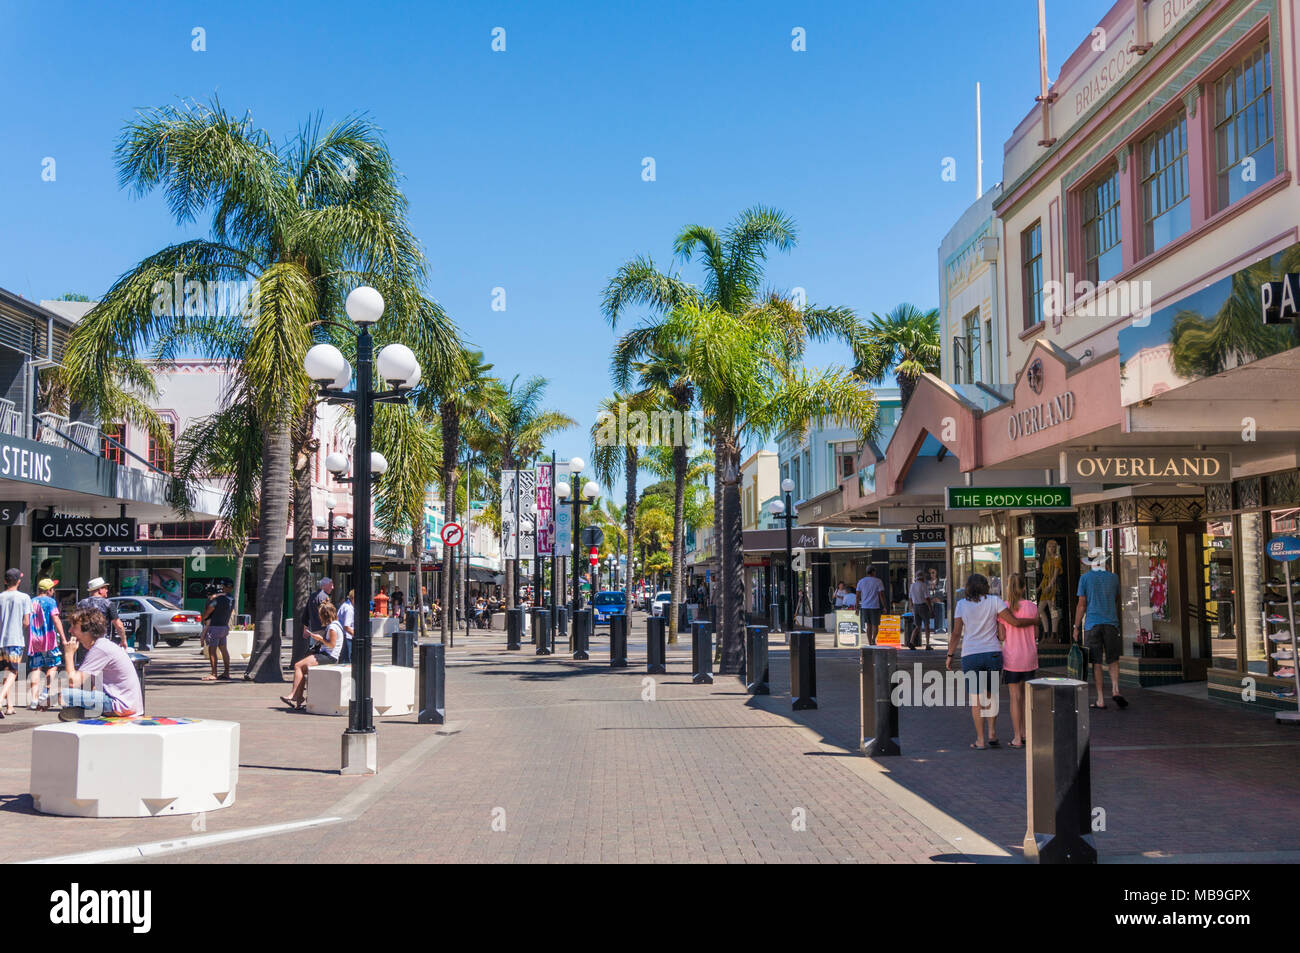 new zealand napier new zealand the art deco architecture of Napier town centre shops emerson street napier new zealand north island nz - Stock Image